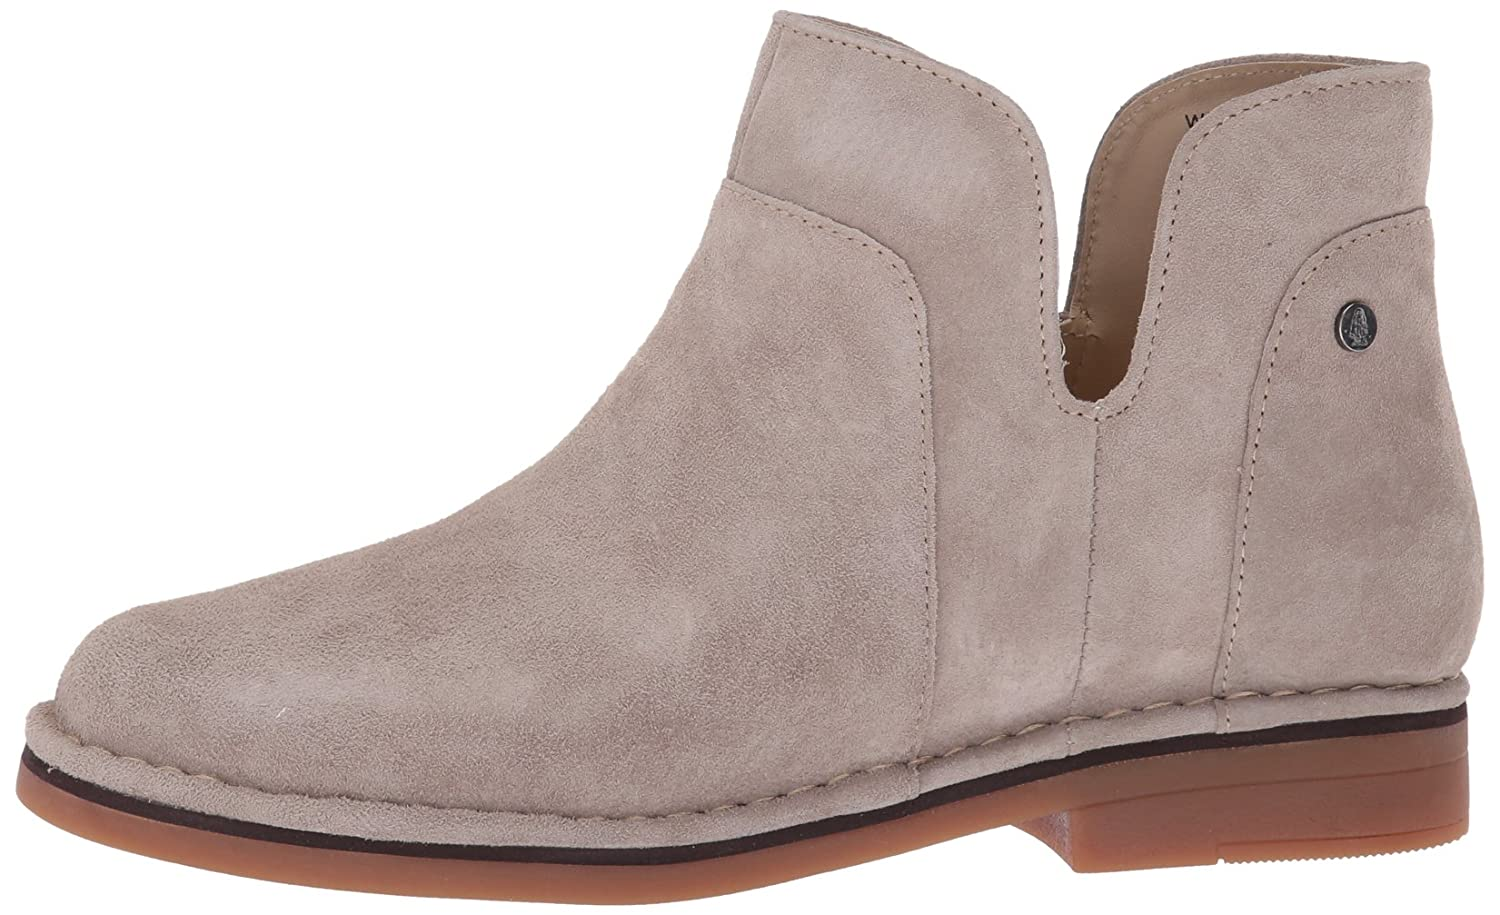 Hush Hush Hush Puppies Damen Claudia Catelyn Stiefel Beige (Taupe) 8a9eed